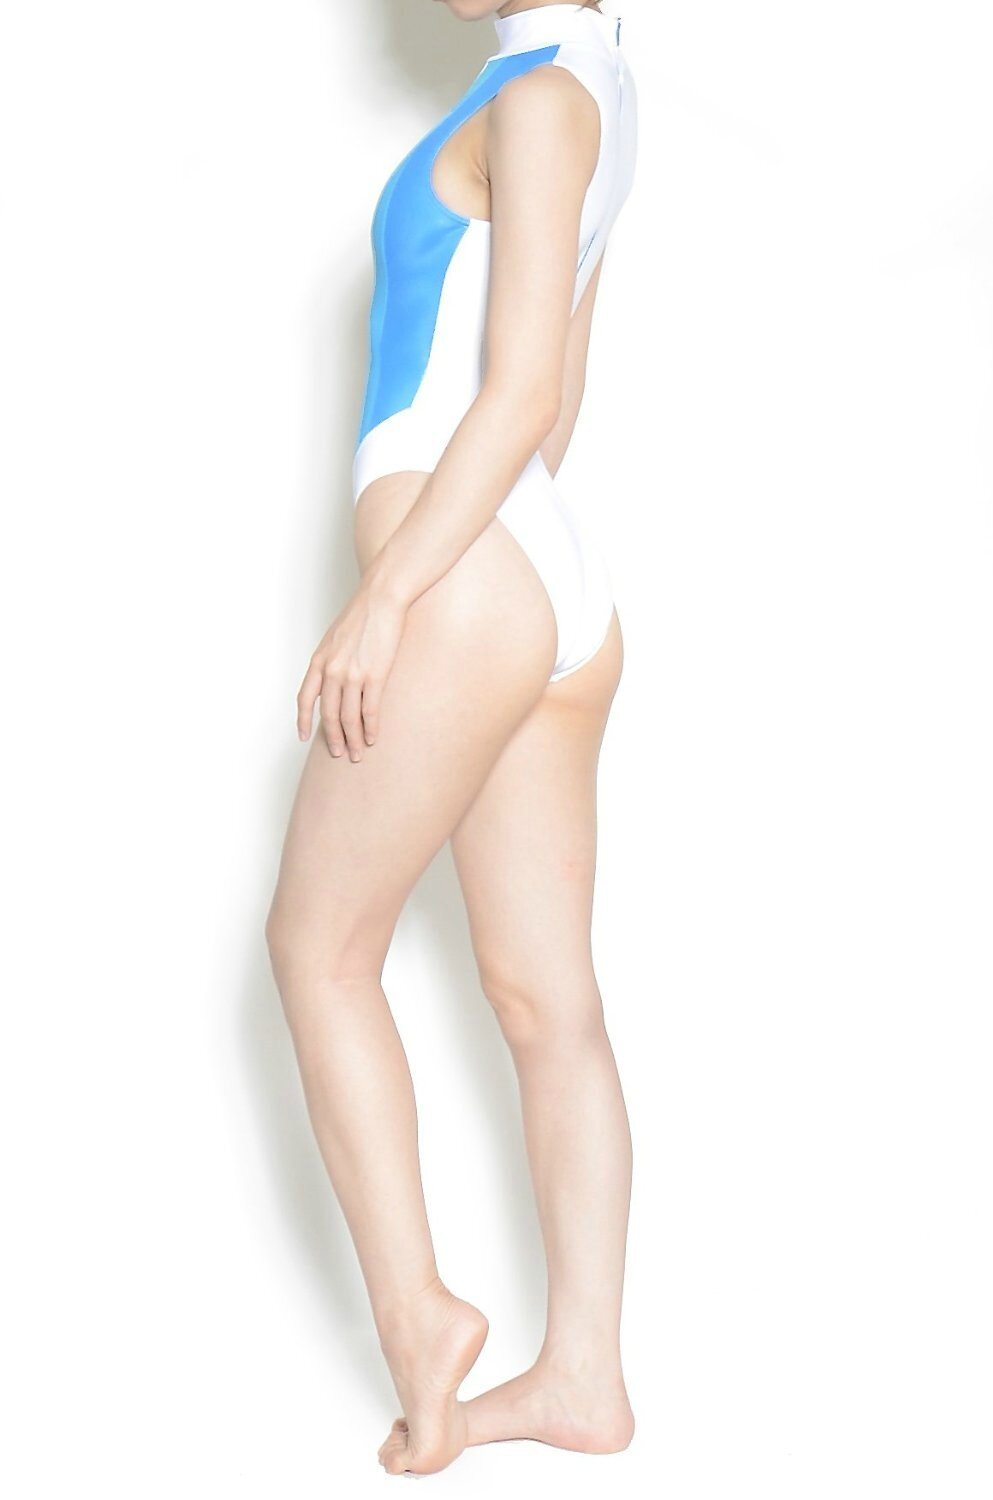 Maillot N-037 Shiny white & Blue UltraThin by Realise profil